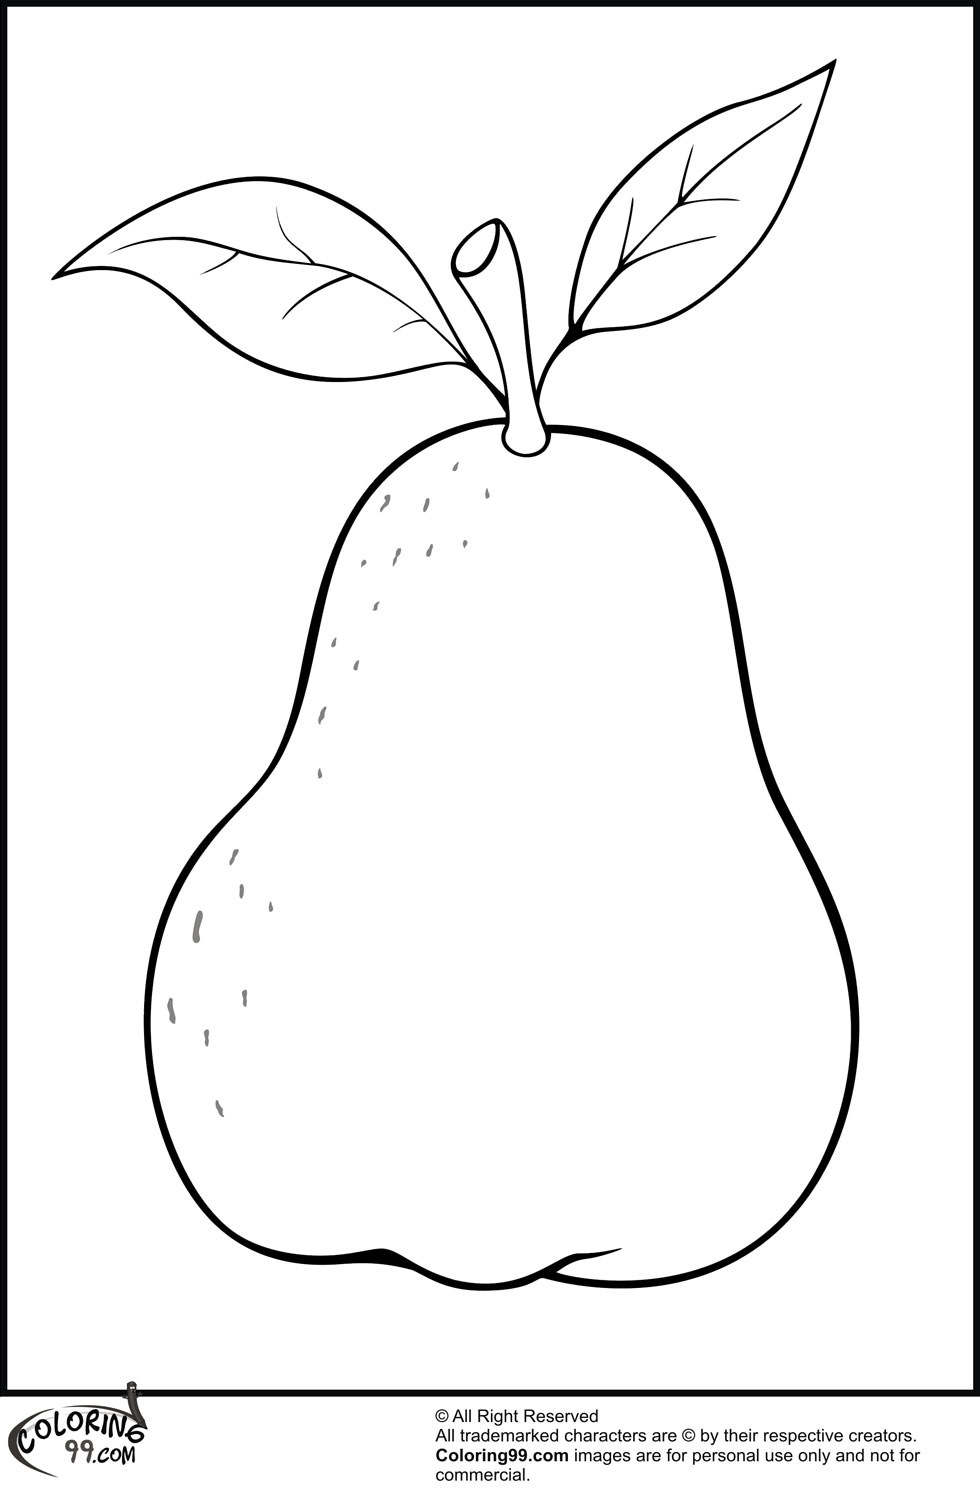 pear coloring pages - photo#2